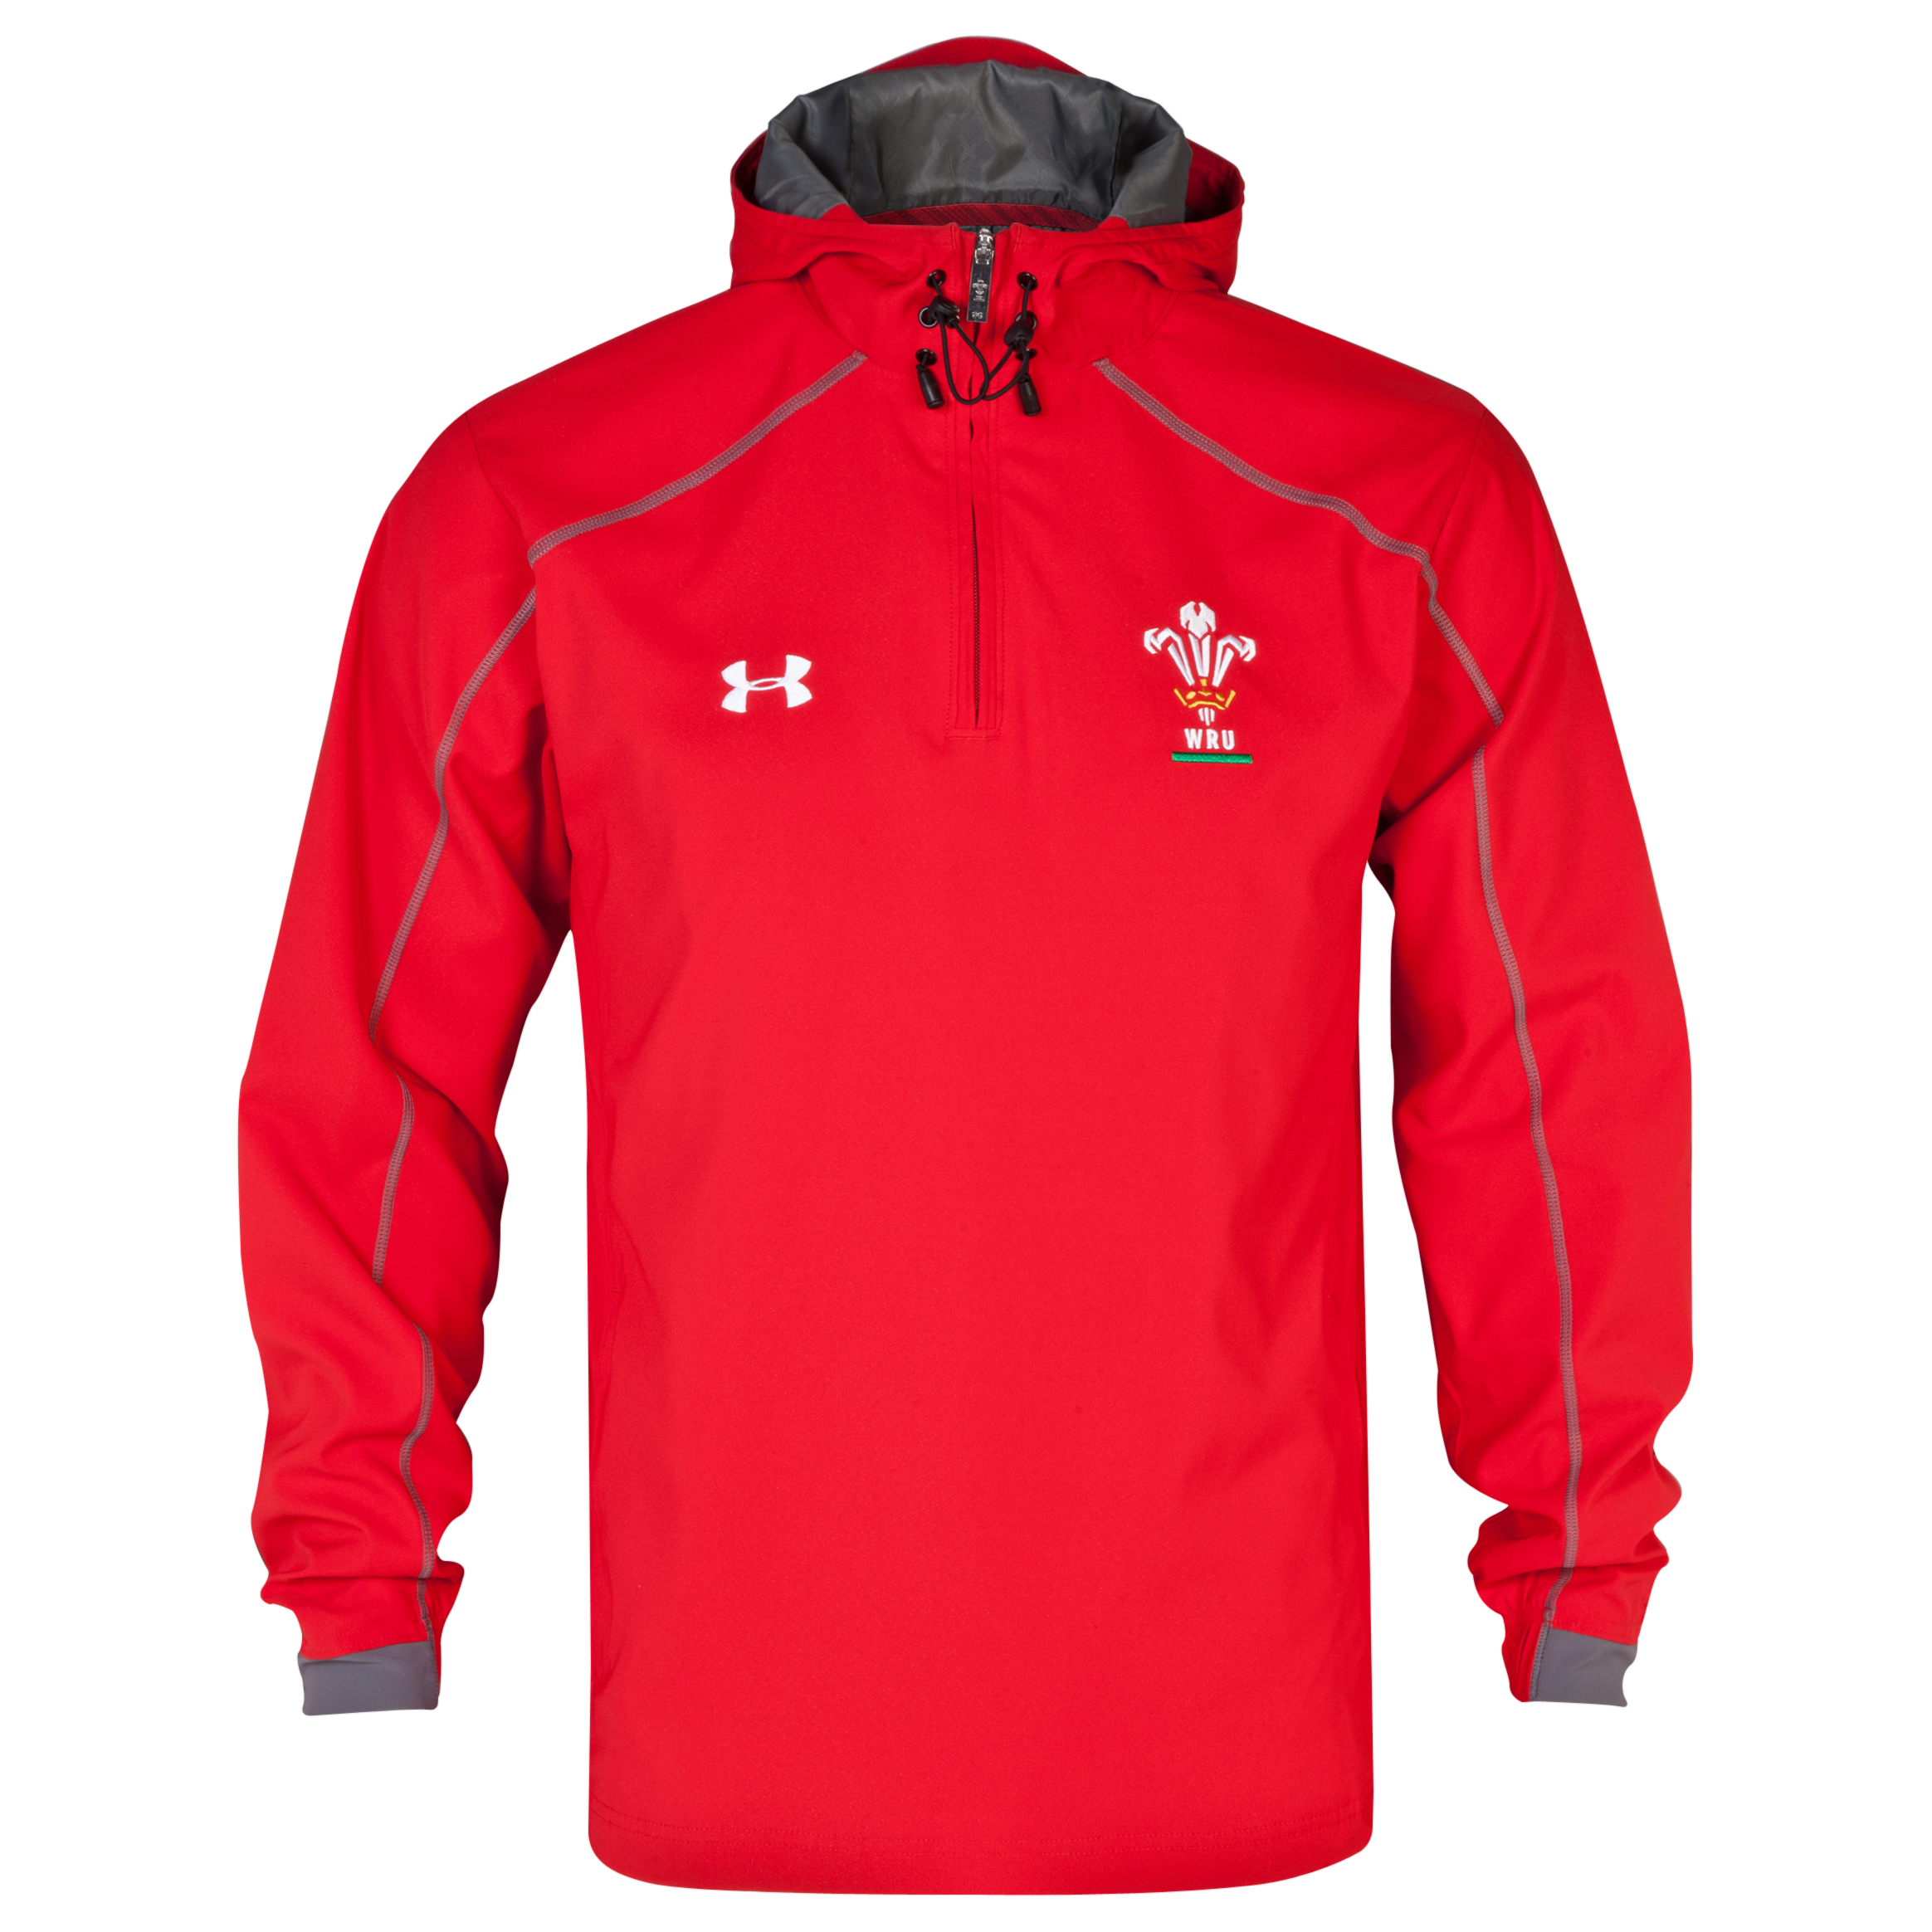 Wales Rugby Union Supporters Training Jacket - Red/Graphite